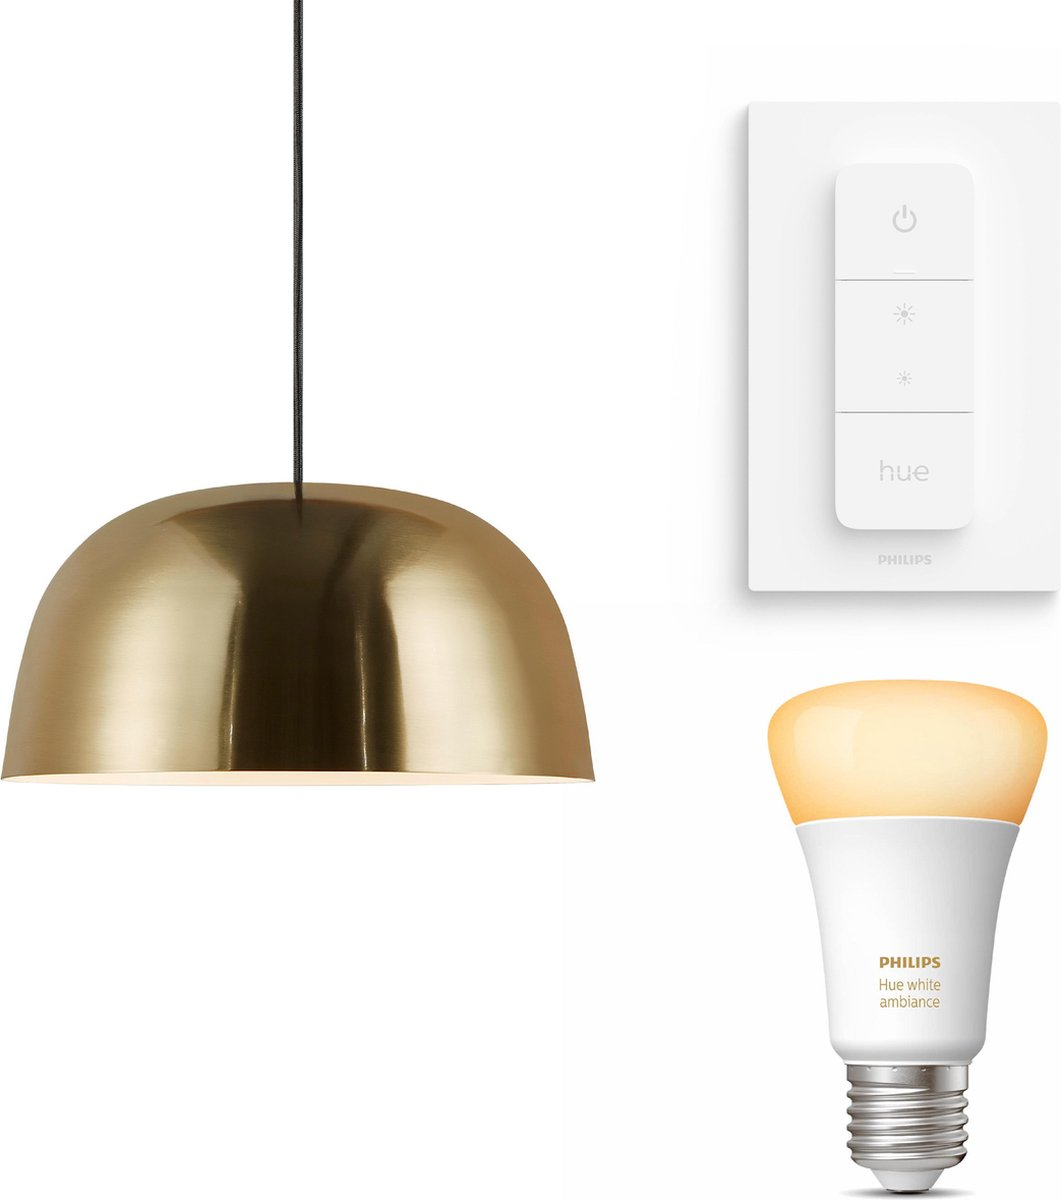 Nordlux Cera hanglamp - LED - goud - 1 lichtpunt - incl. Philips Hue White Ambiance E27 & dimmer